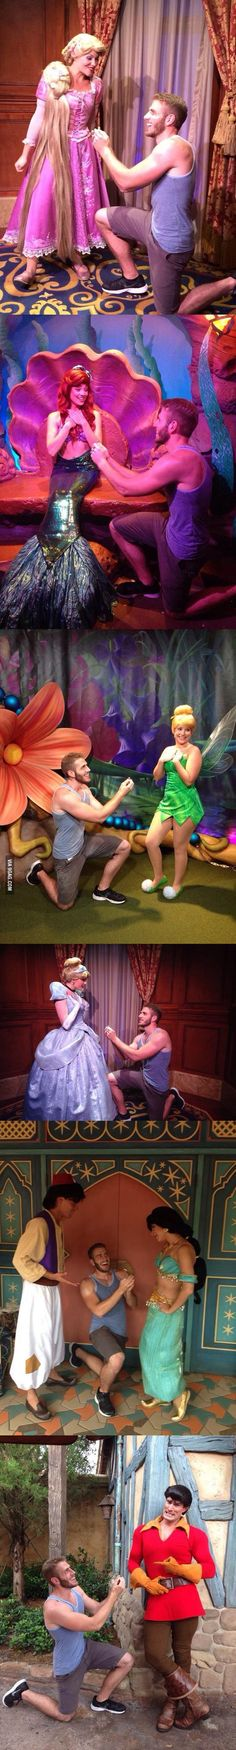 Guy proposes to various Disney characters at Disney World. Haha love the last one